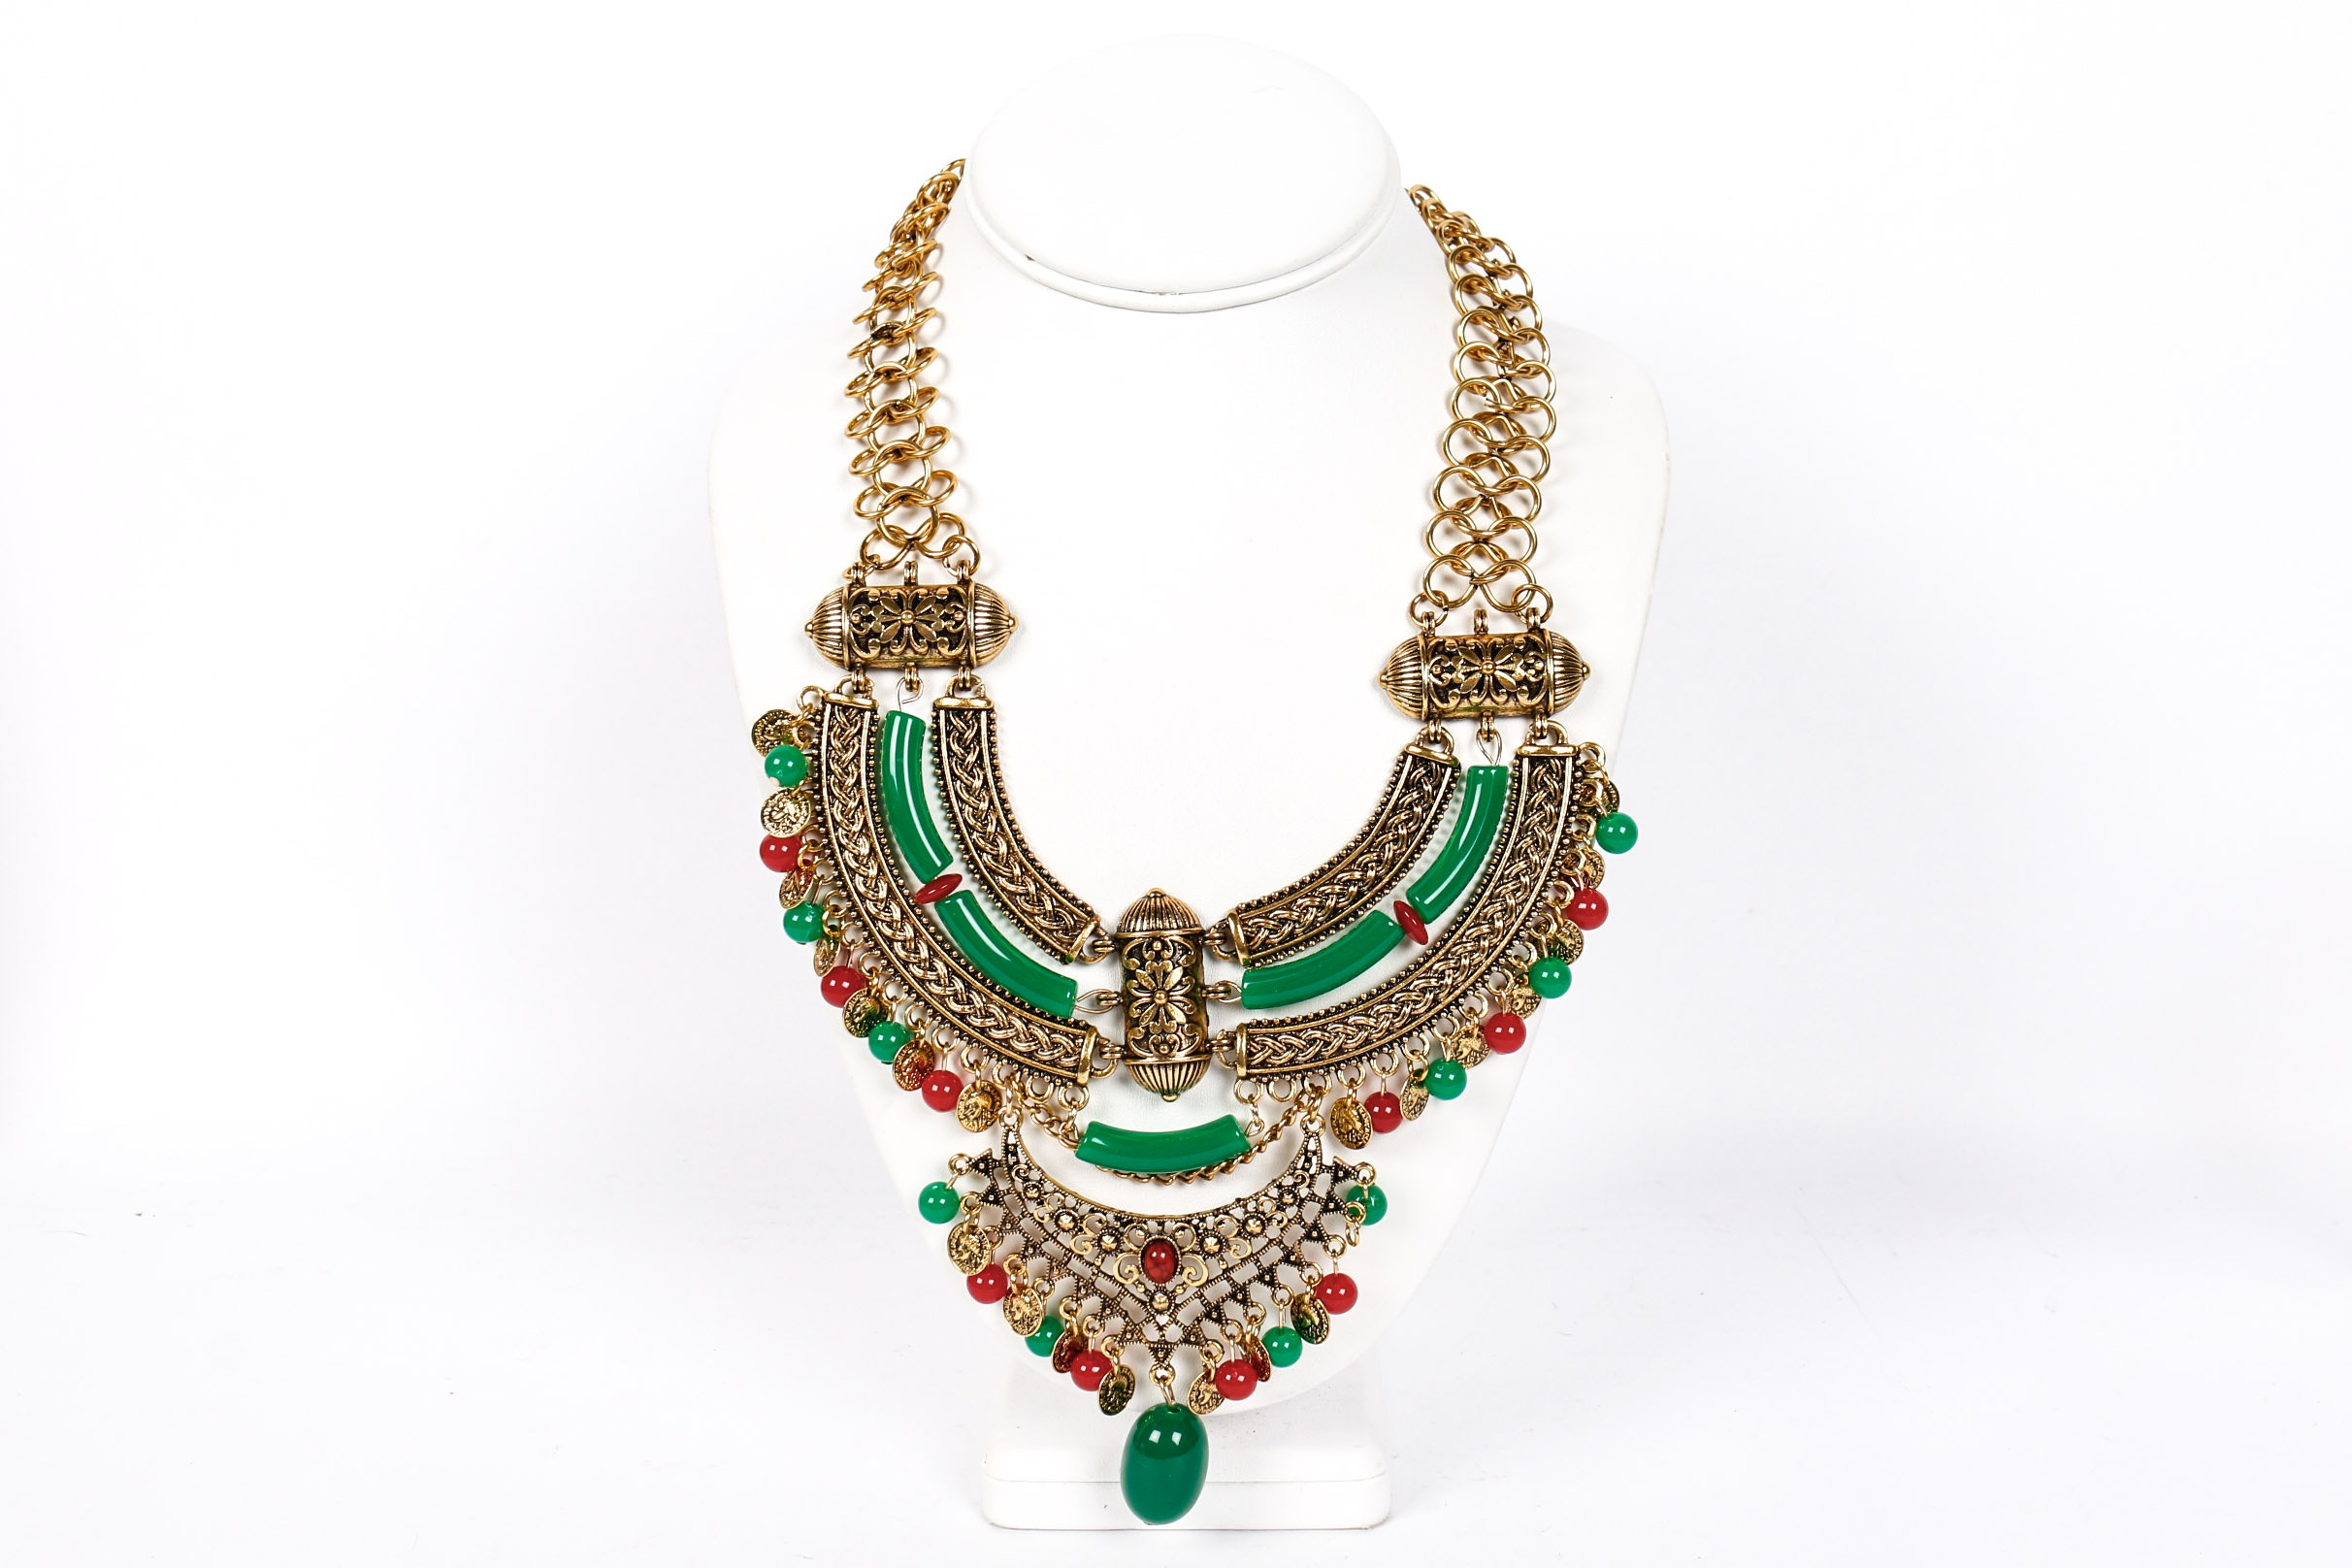 Green and Red Beaded Egyptian Revival Choker